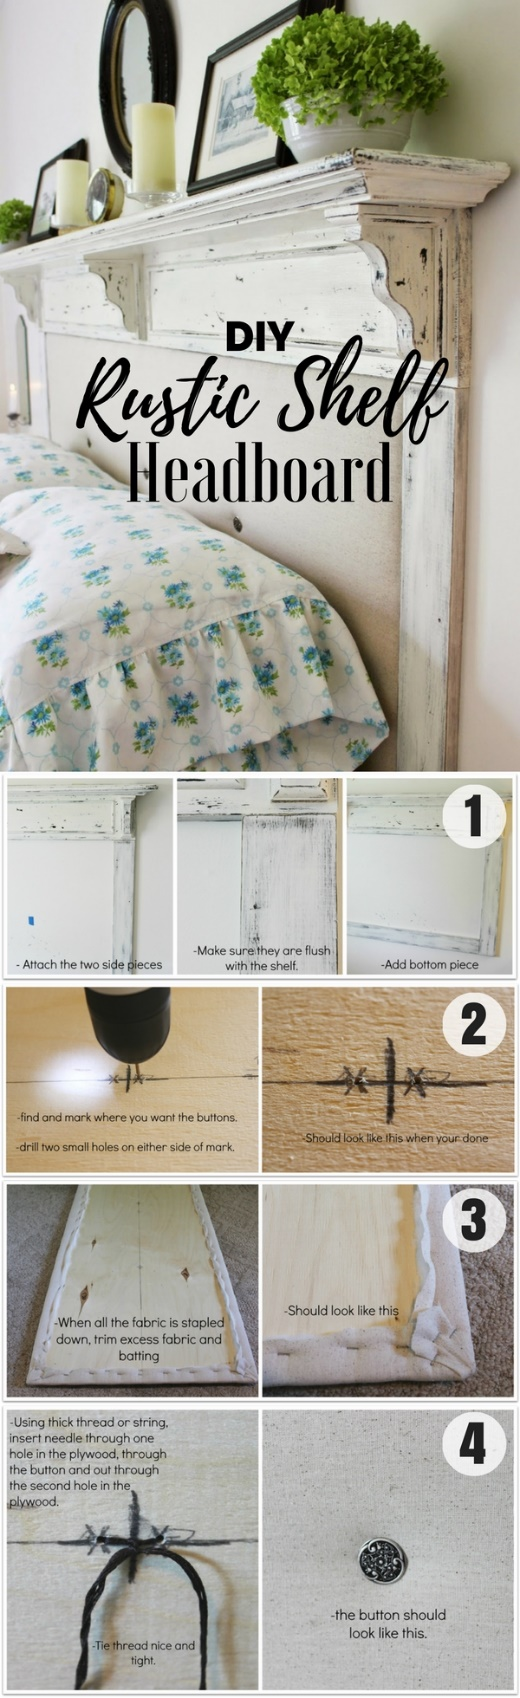 Check out how to build a DIY Rustic Shelf Headboard @istandarddesign